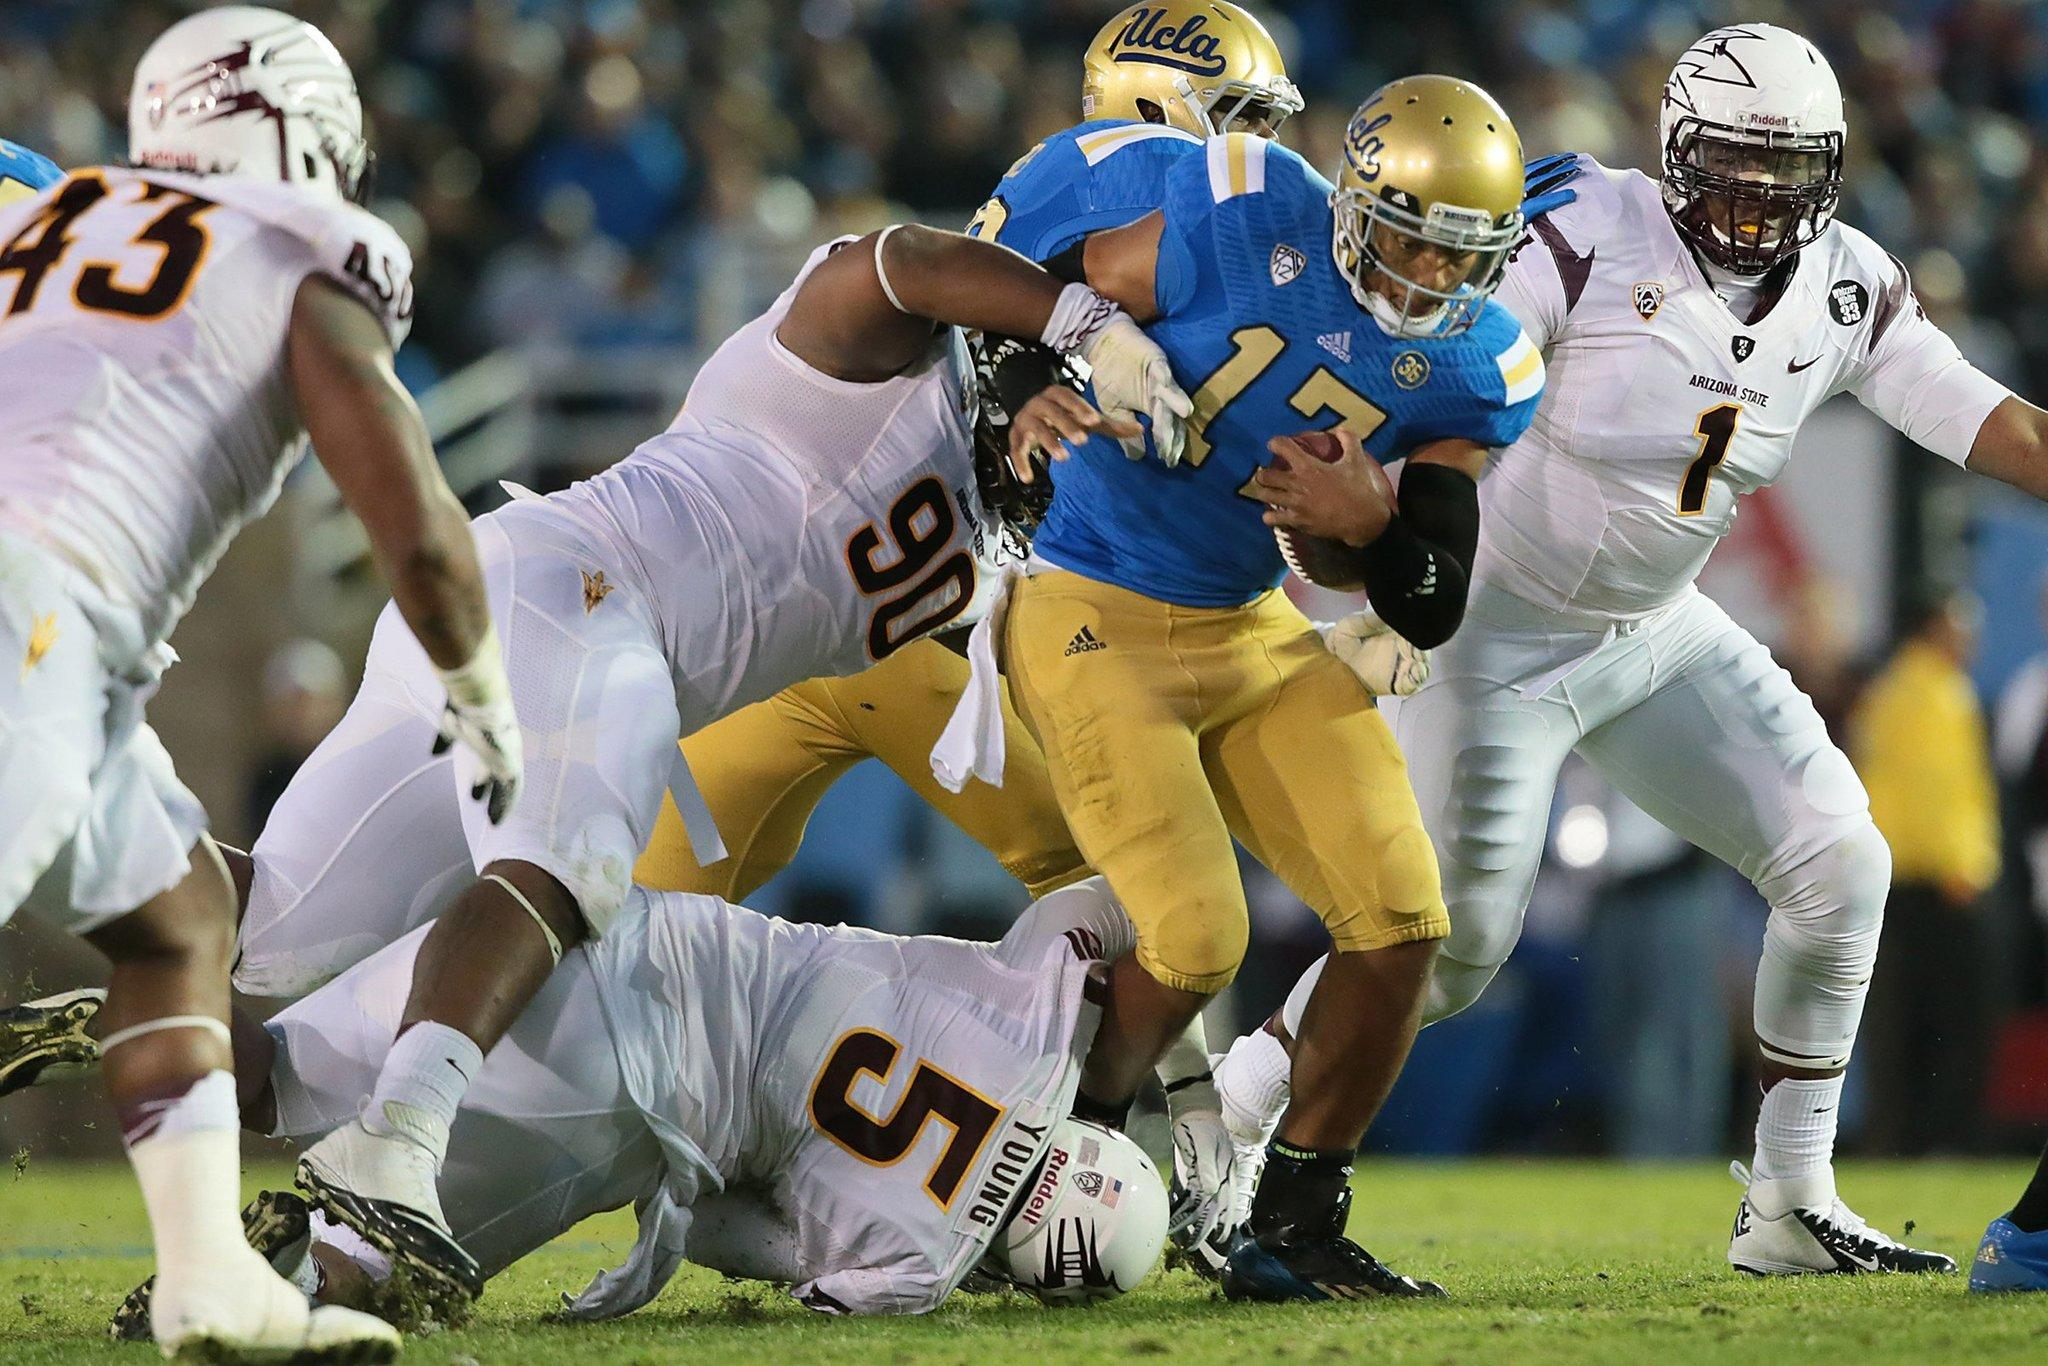 Bears choose Arizona State's Will Sutton (90) with their third-round draft pick.